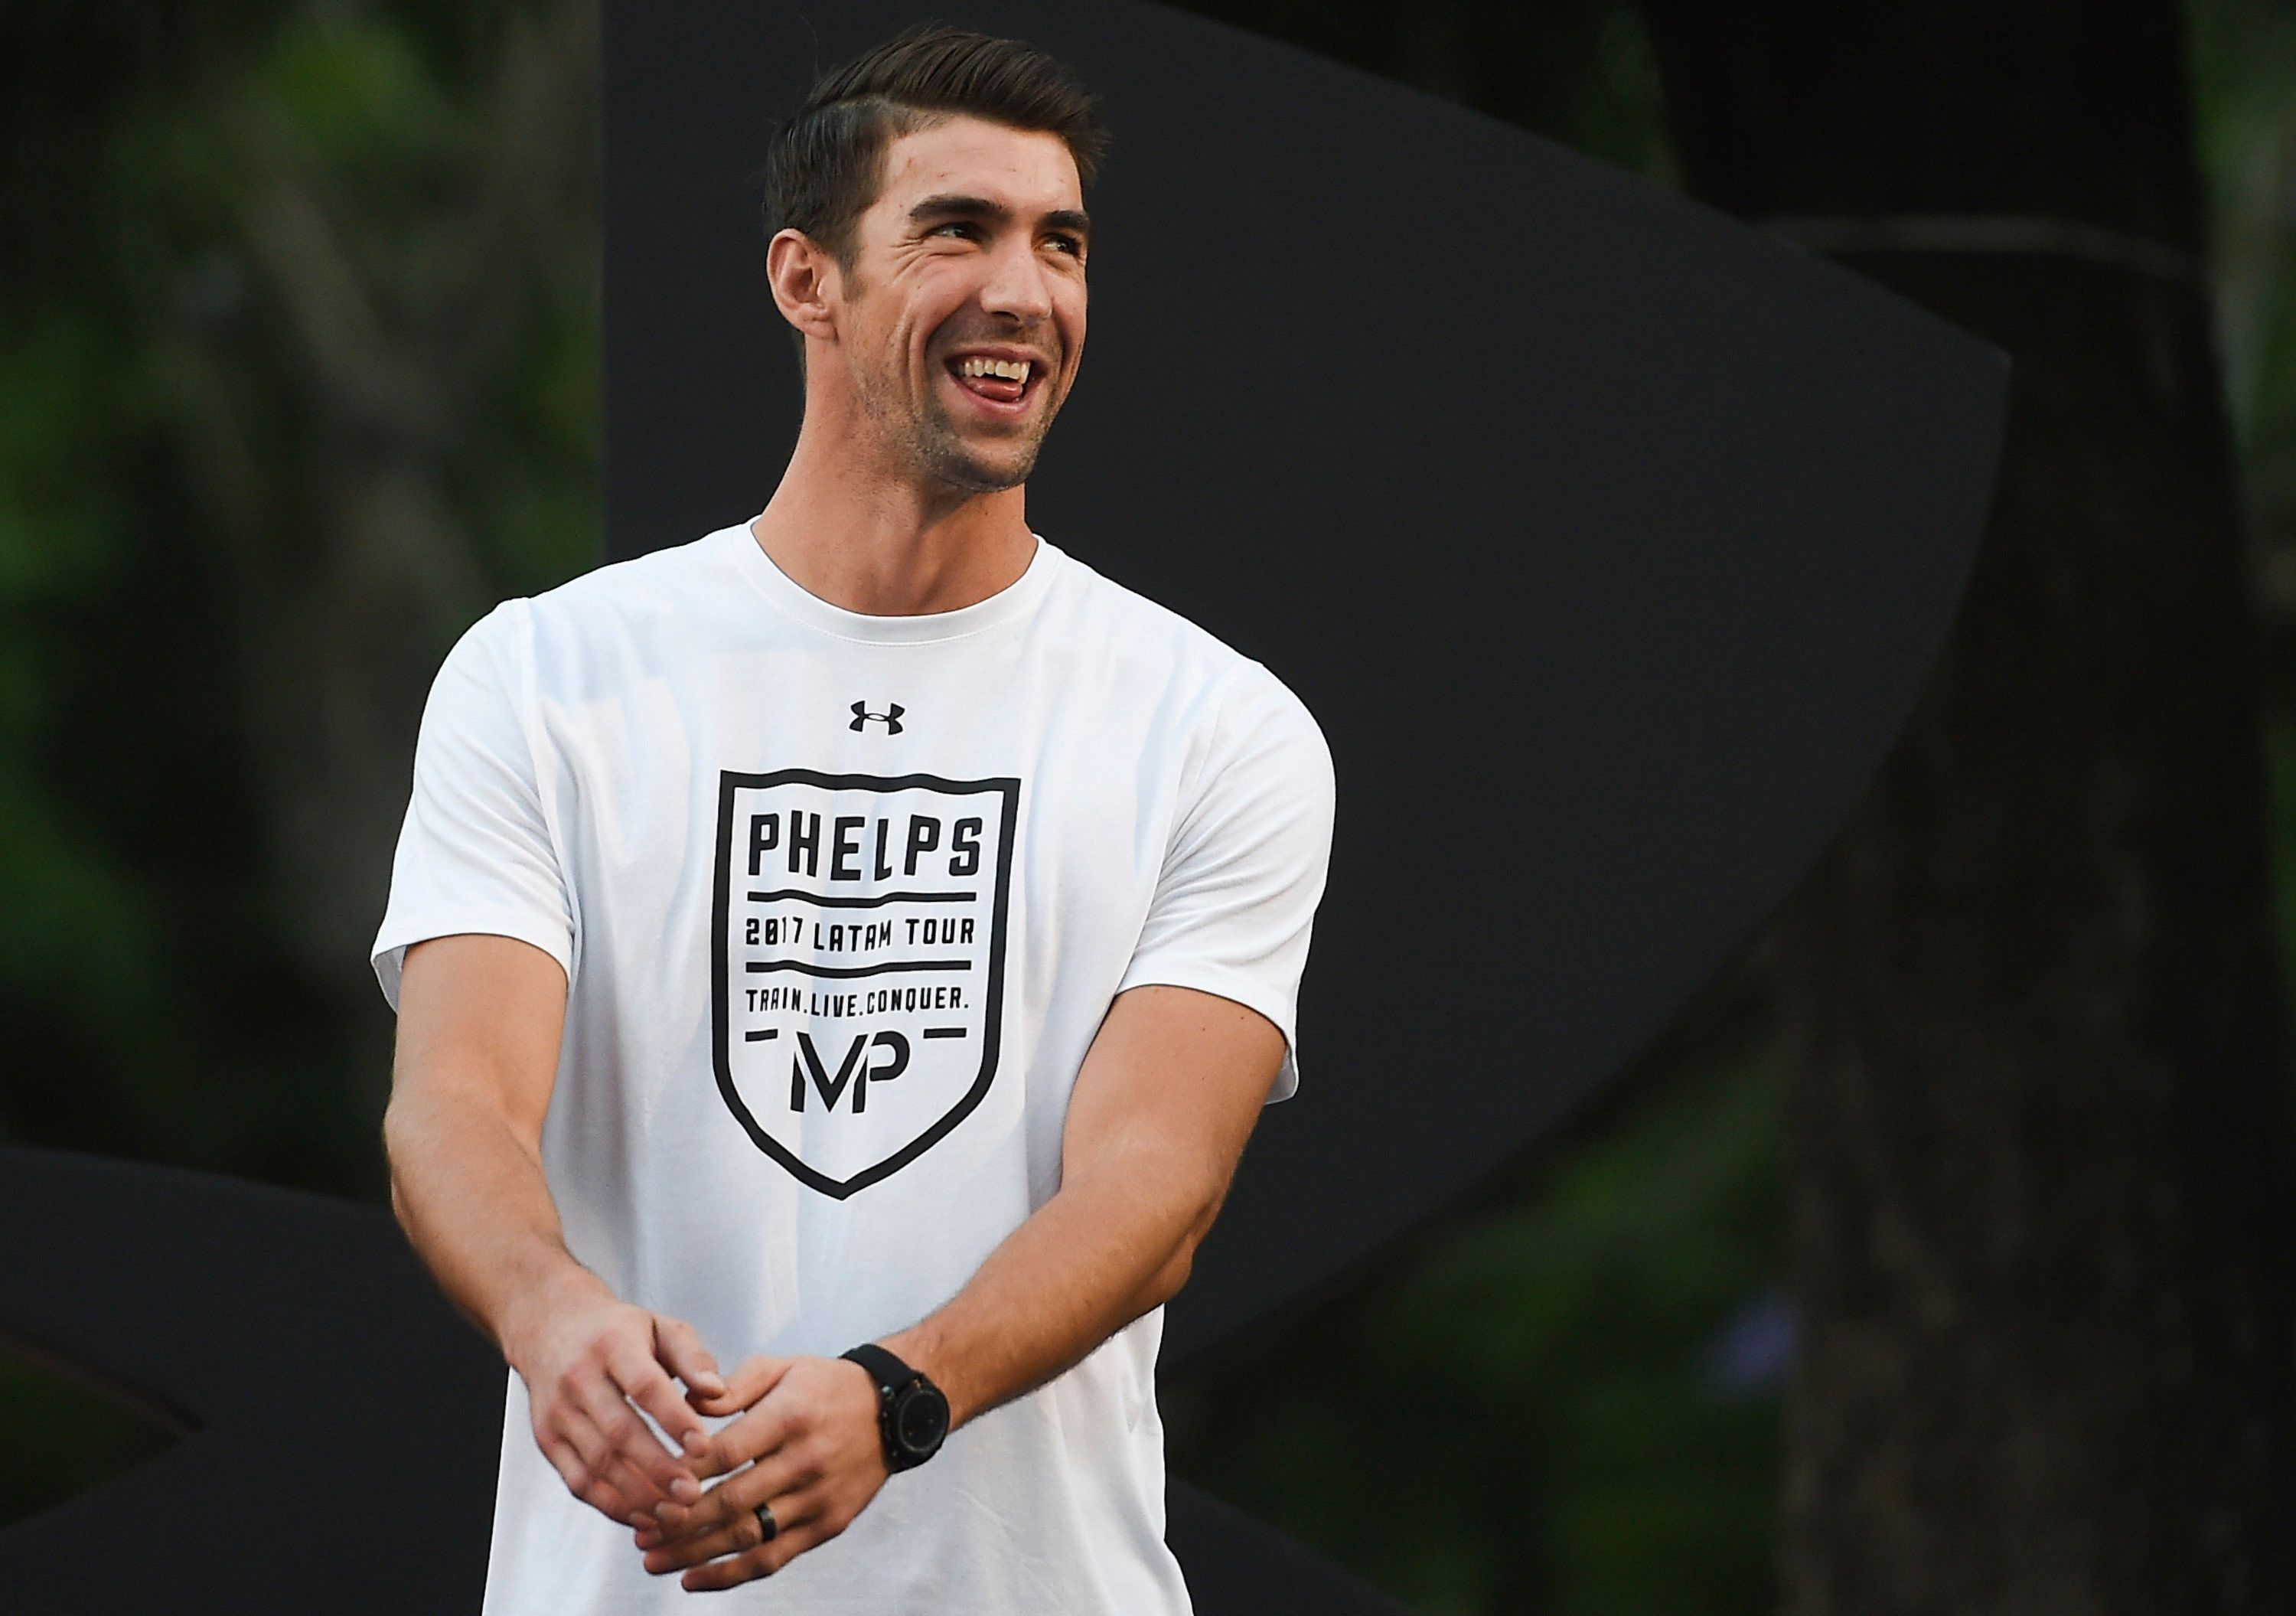 Michael Phelps Opens Up About How Therapy Improved His